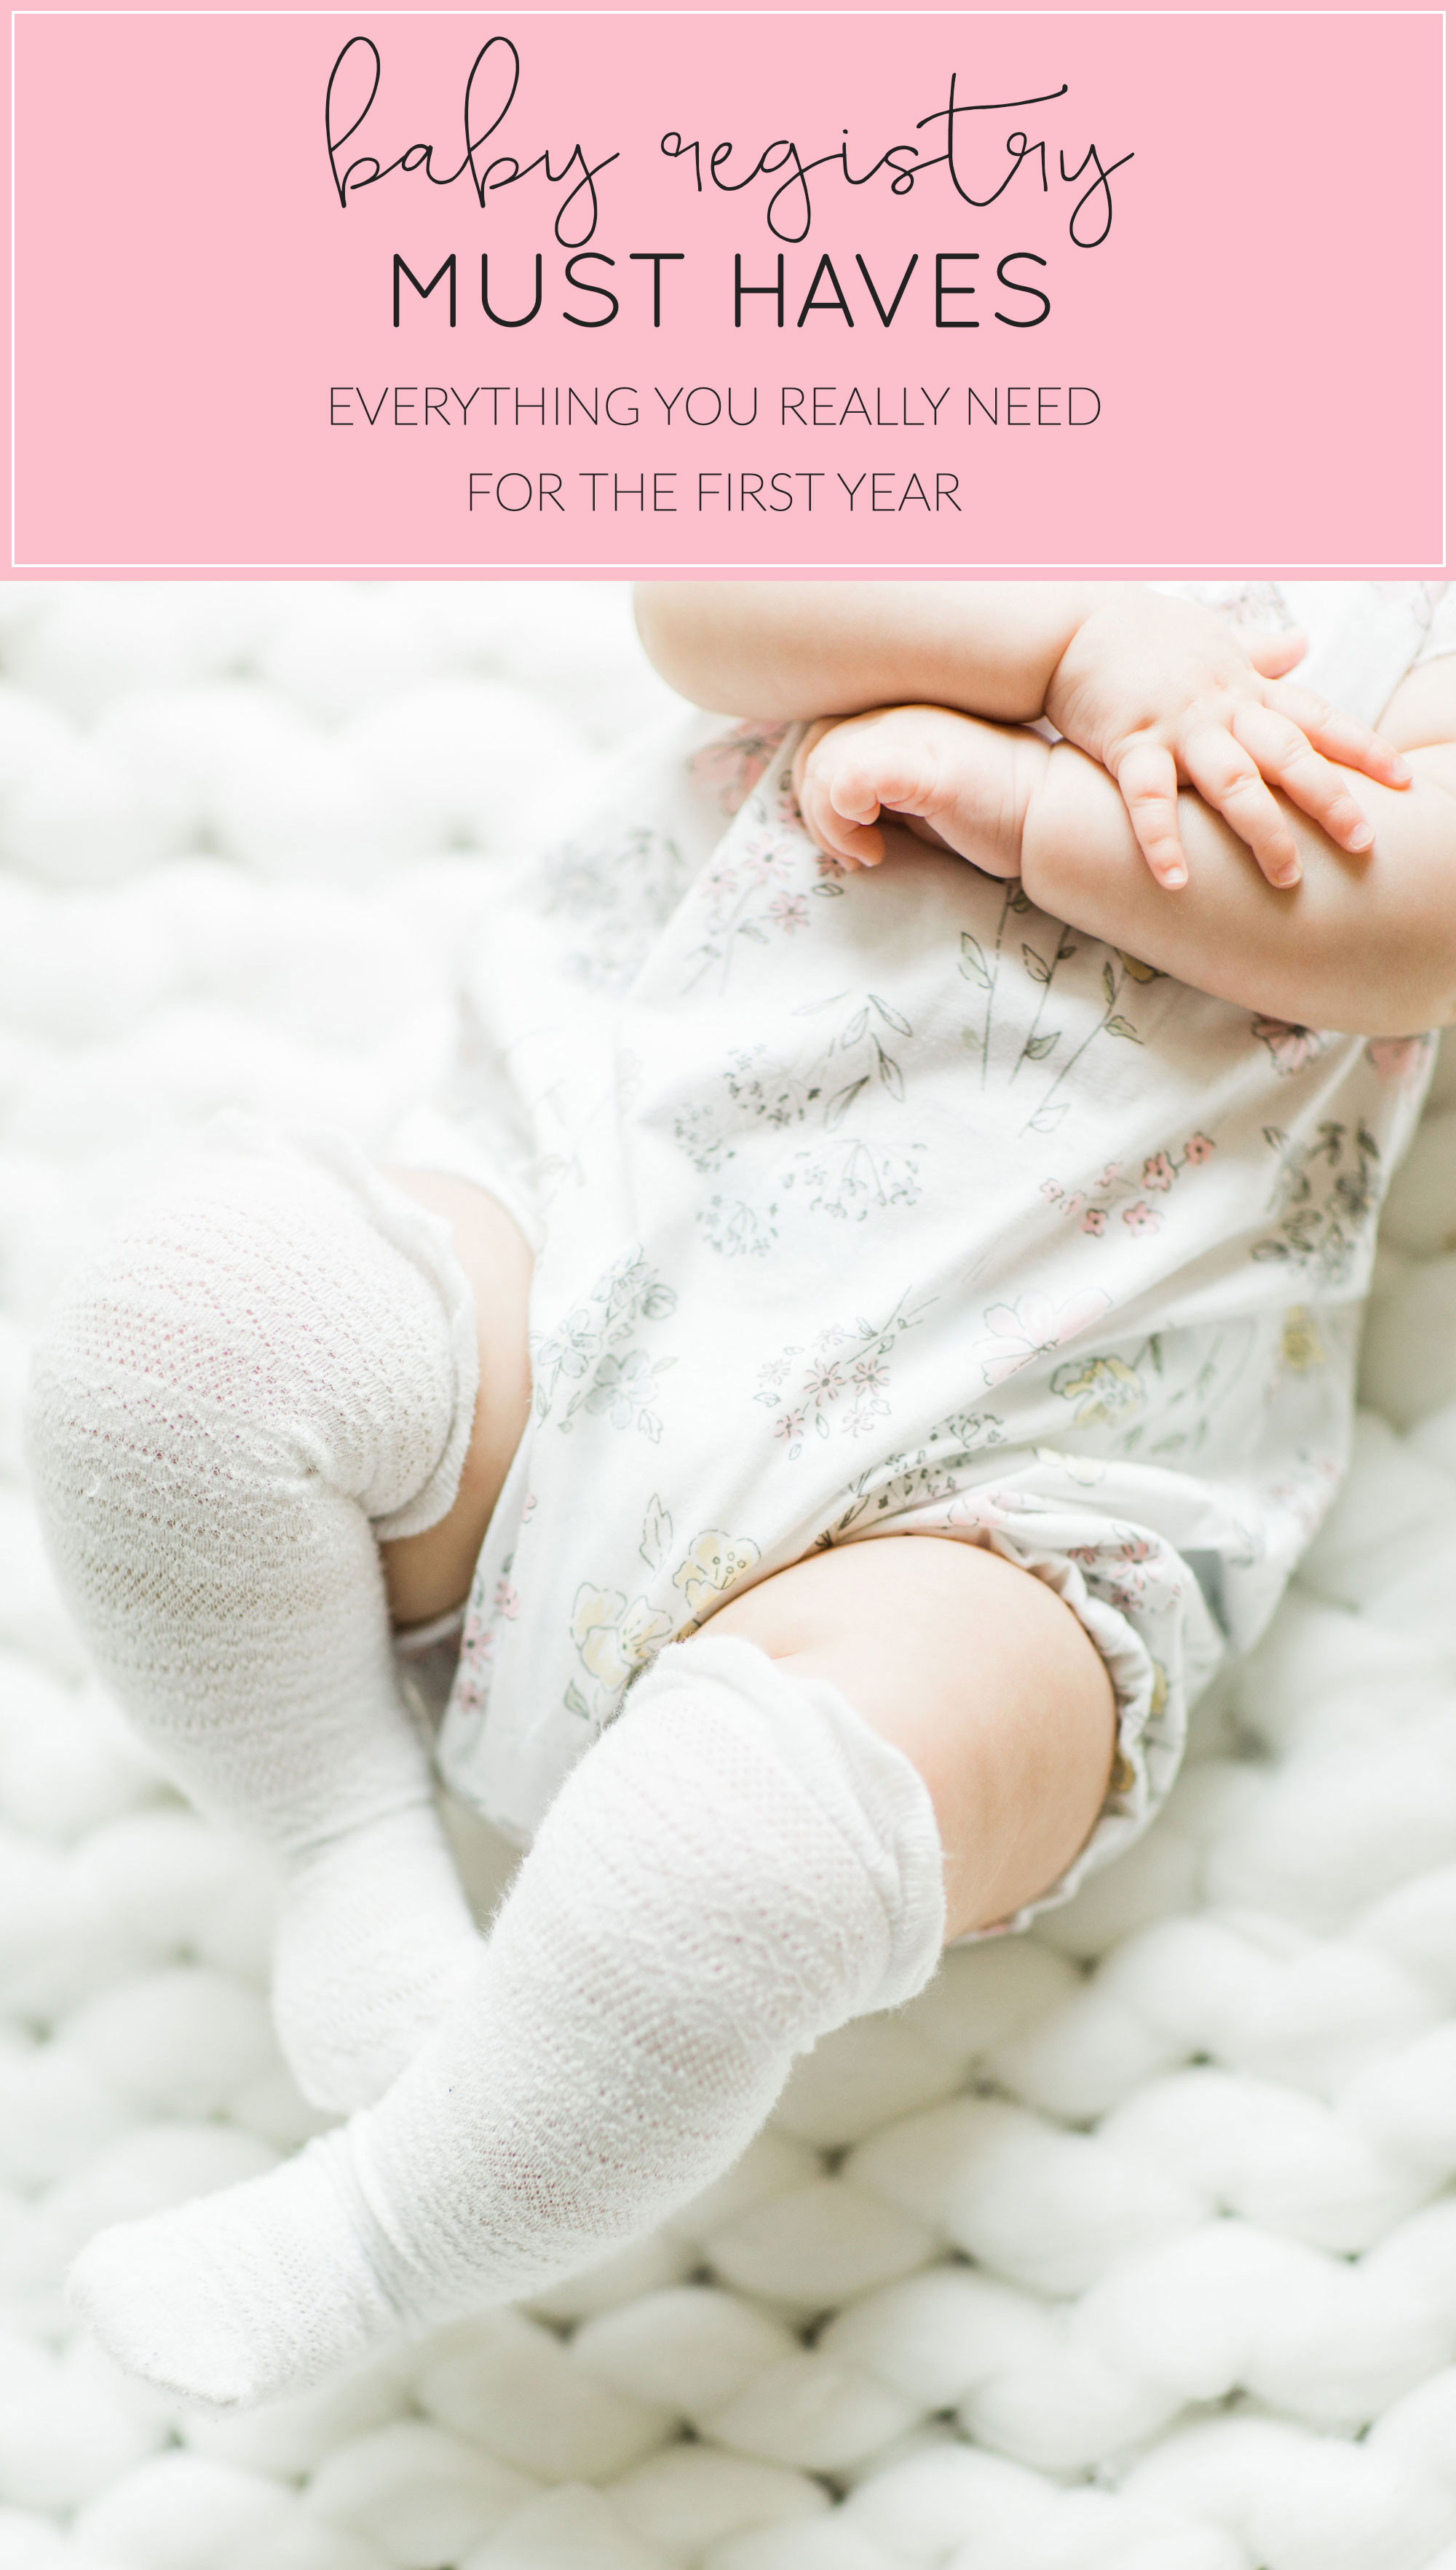 Mom blogger Lexi of Glitter, Inc. shares what baby items were must-haves and essentials for baby's first year, including exactly what to put on a baby registry and why; plus what not to register for. This baby registry checklist is HUGE. Click through for the details. #babyregistry #newbaby #babyessentials #babymusthaves | glitterinc.com | @glitterinc